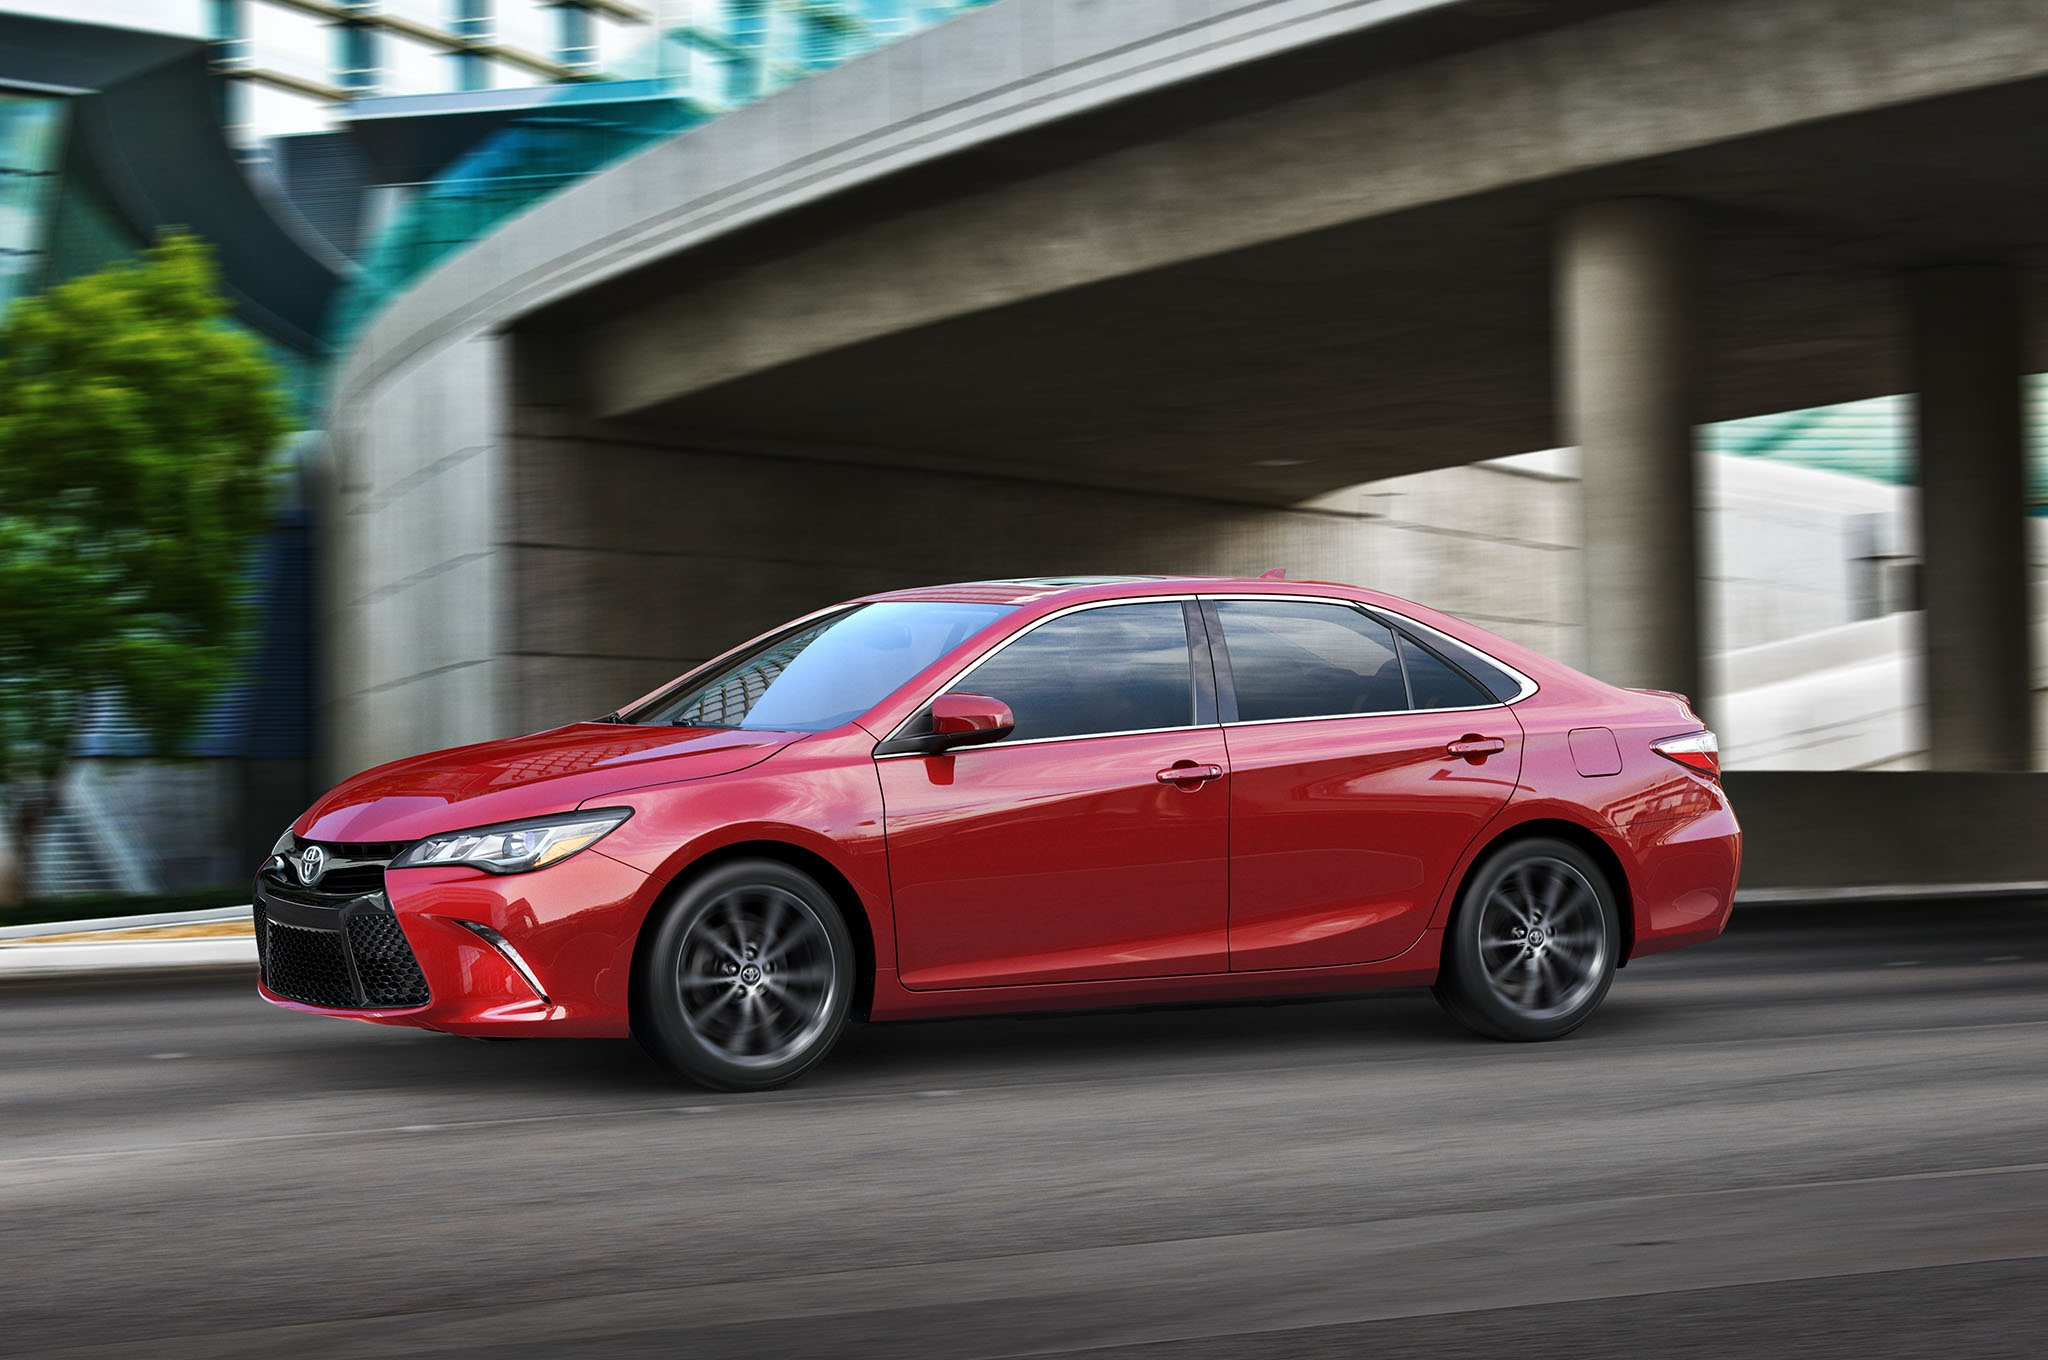 2015-toyota-camry-profile-in-motion-02